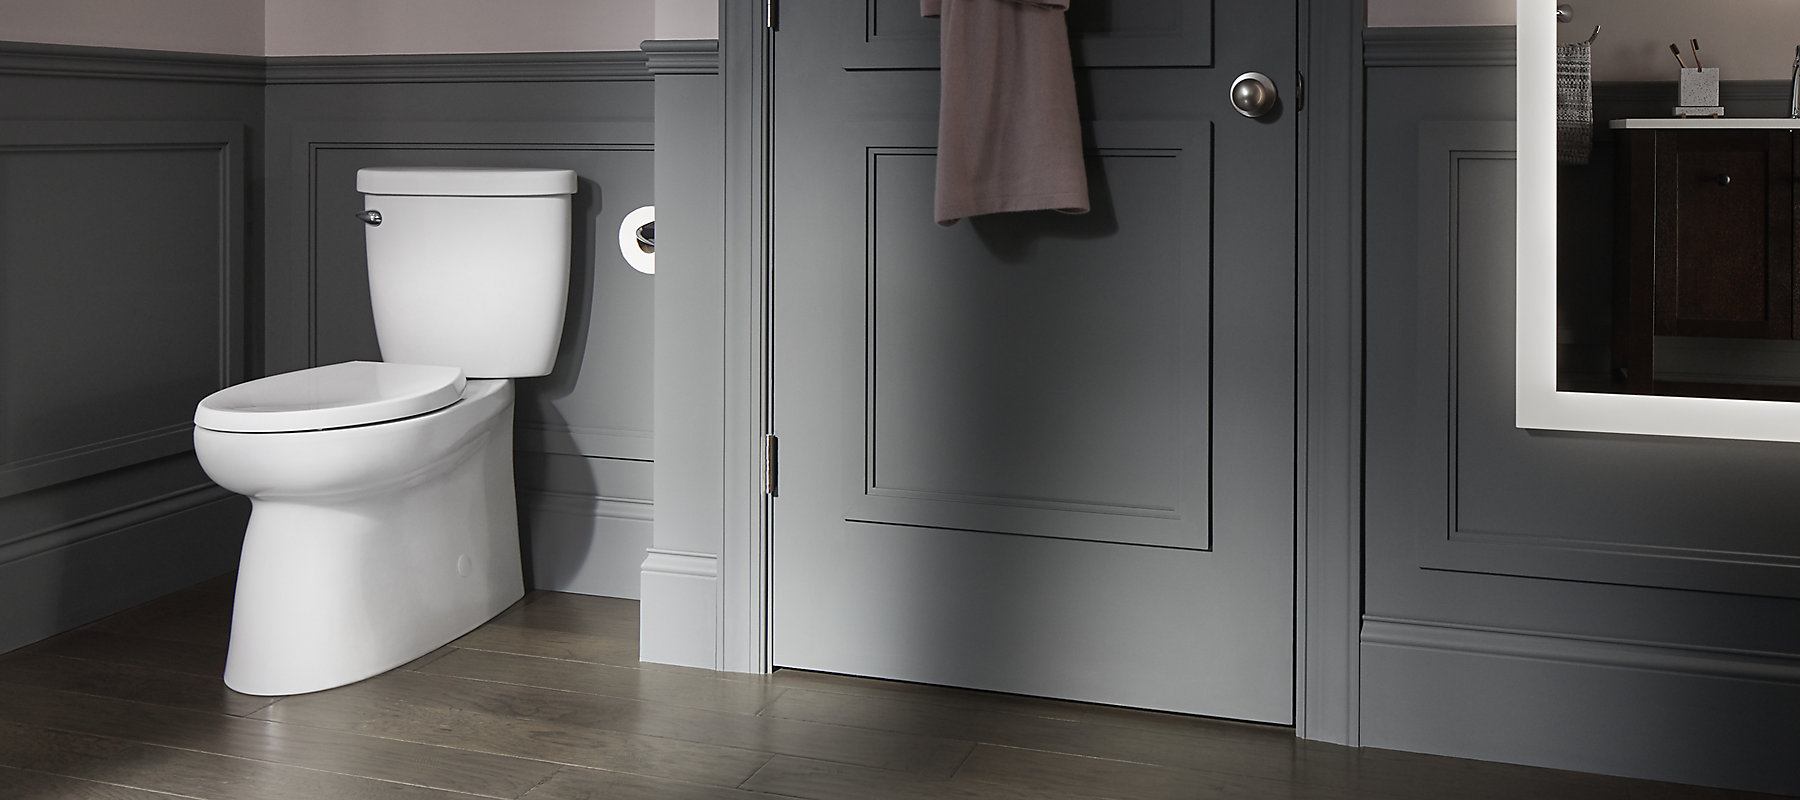 The Brella Toilet Offers An Easy To Clean Skirted Base And A Sleek Aesthetic